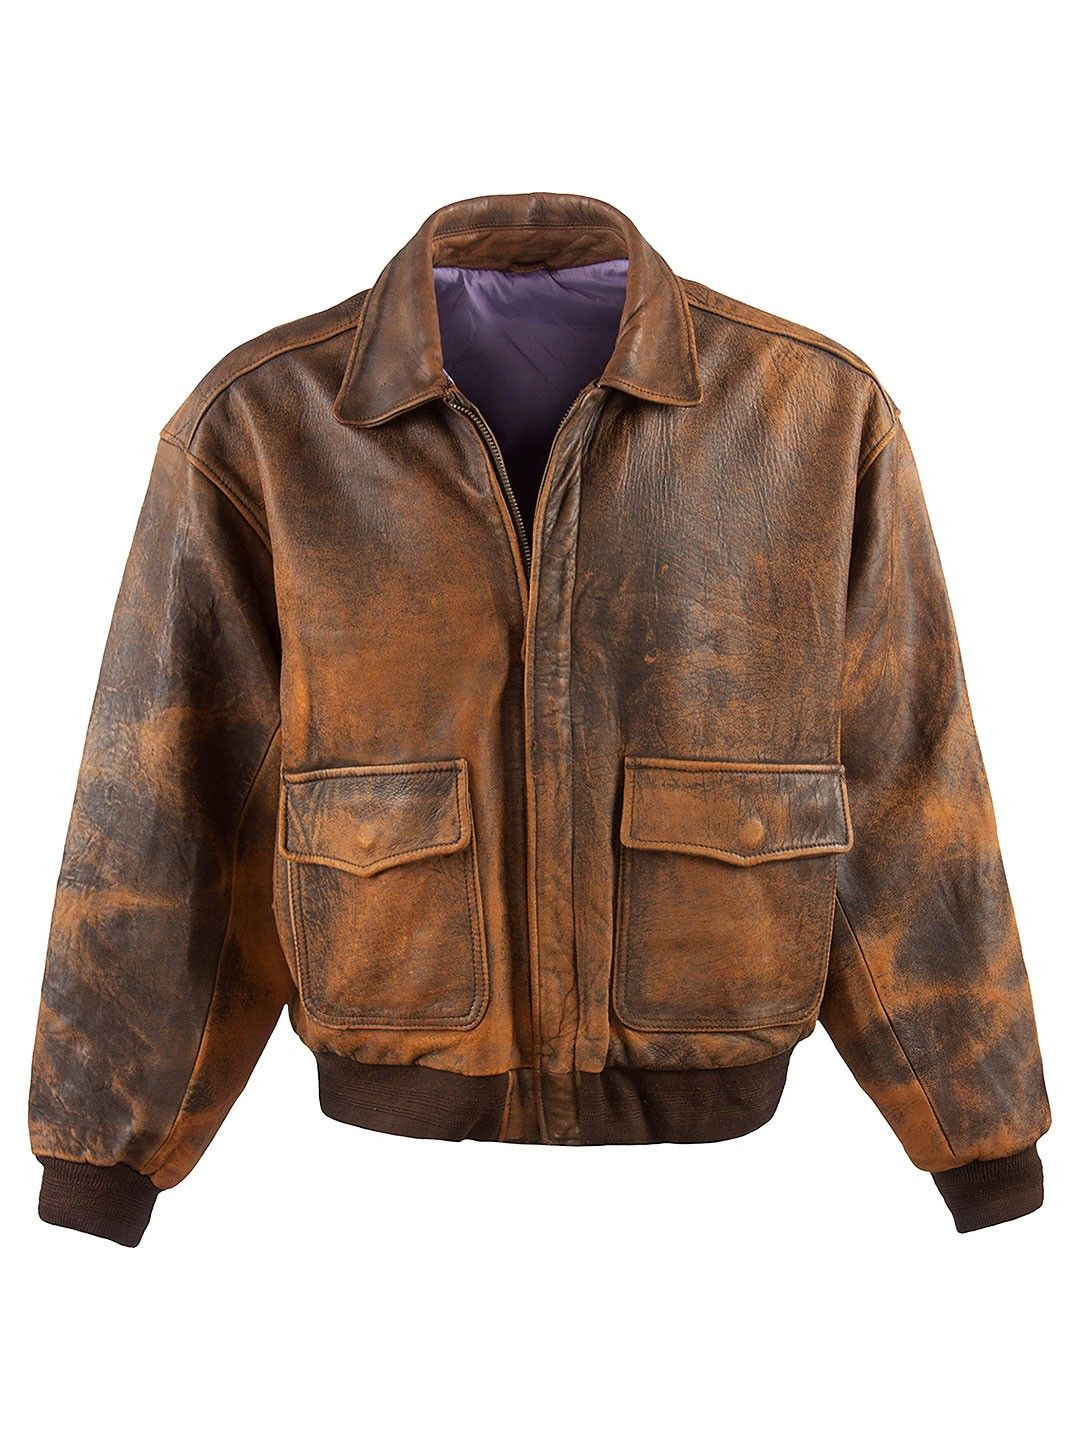 Vintage Classic Vintage Aviator Jacket - XL, Regular Fit, size Size XL . Colour Washed Brown and made from 100% Cowhide Leather with with Lilac Lining and and YKK Front Zip Fastening fastening.